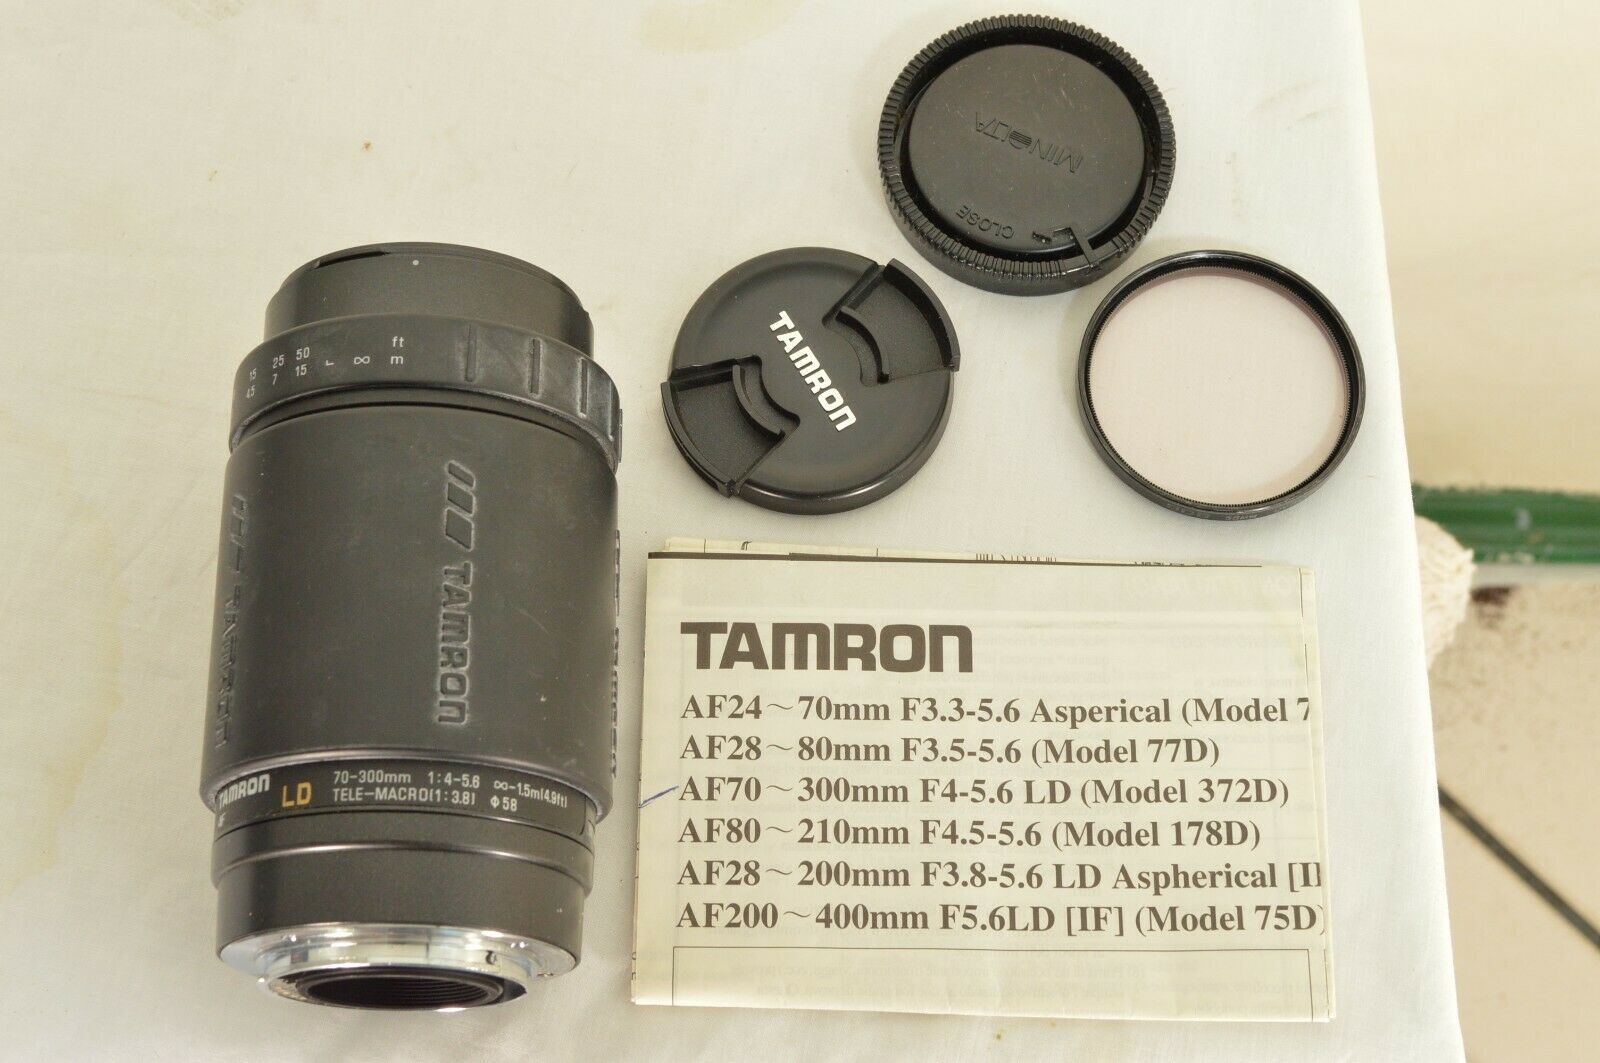 Tamron LD 70-300mm f/4.0-5.6 LD AF camera lens for Sony image 8